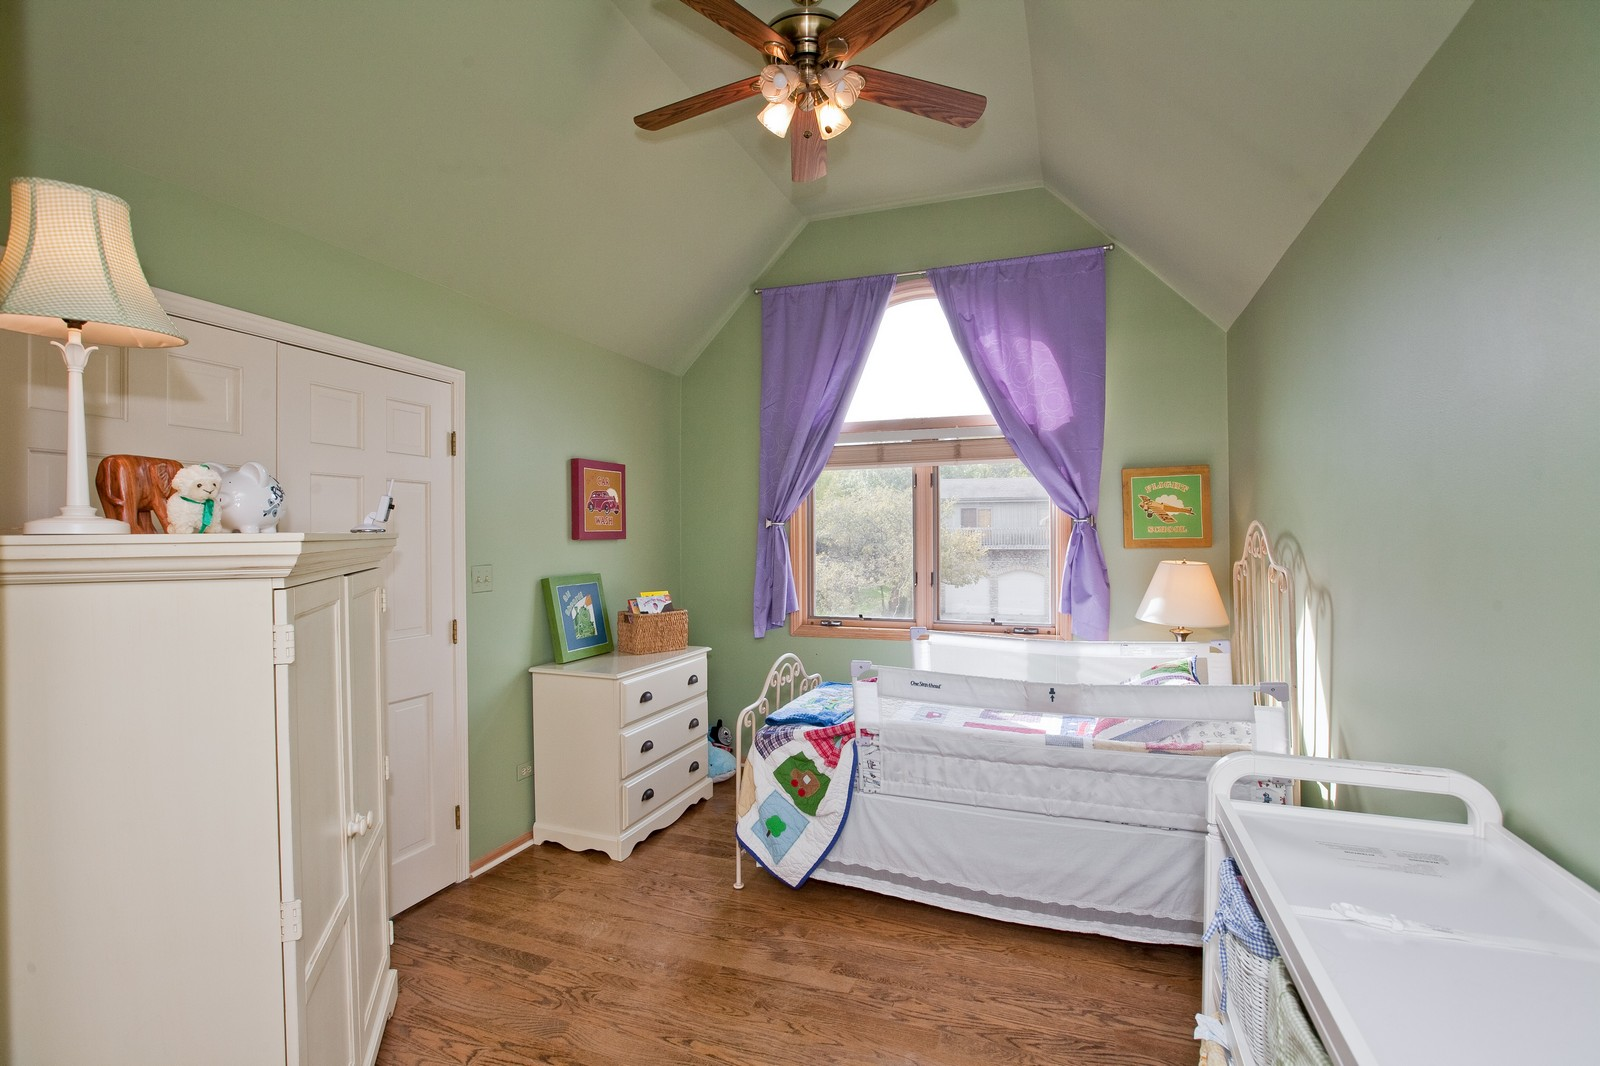 Real Estate Photography - 1031 W. 119th St, Lemont, IL, 60439 - 2nd Bedroom